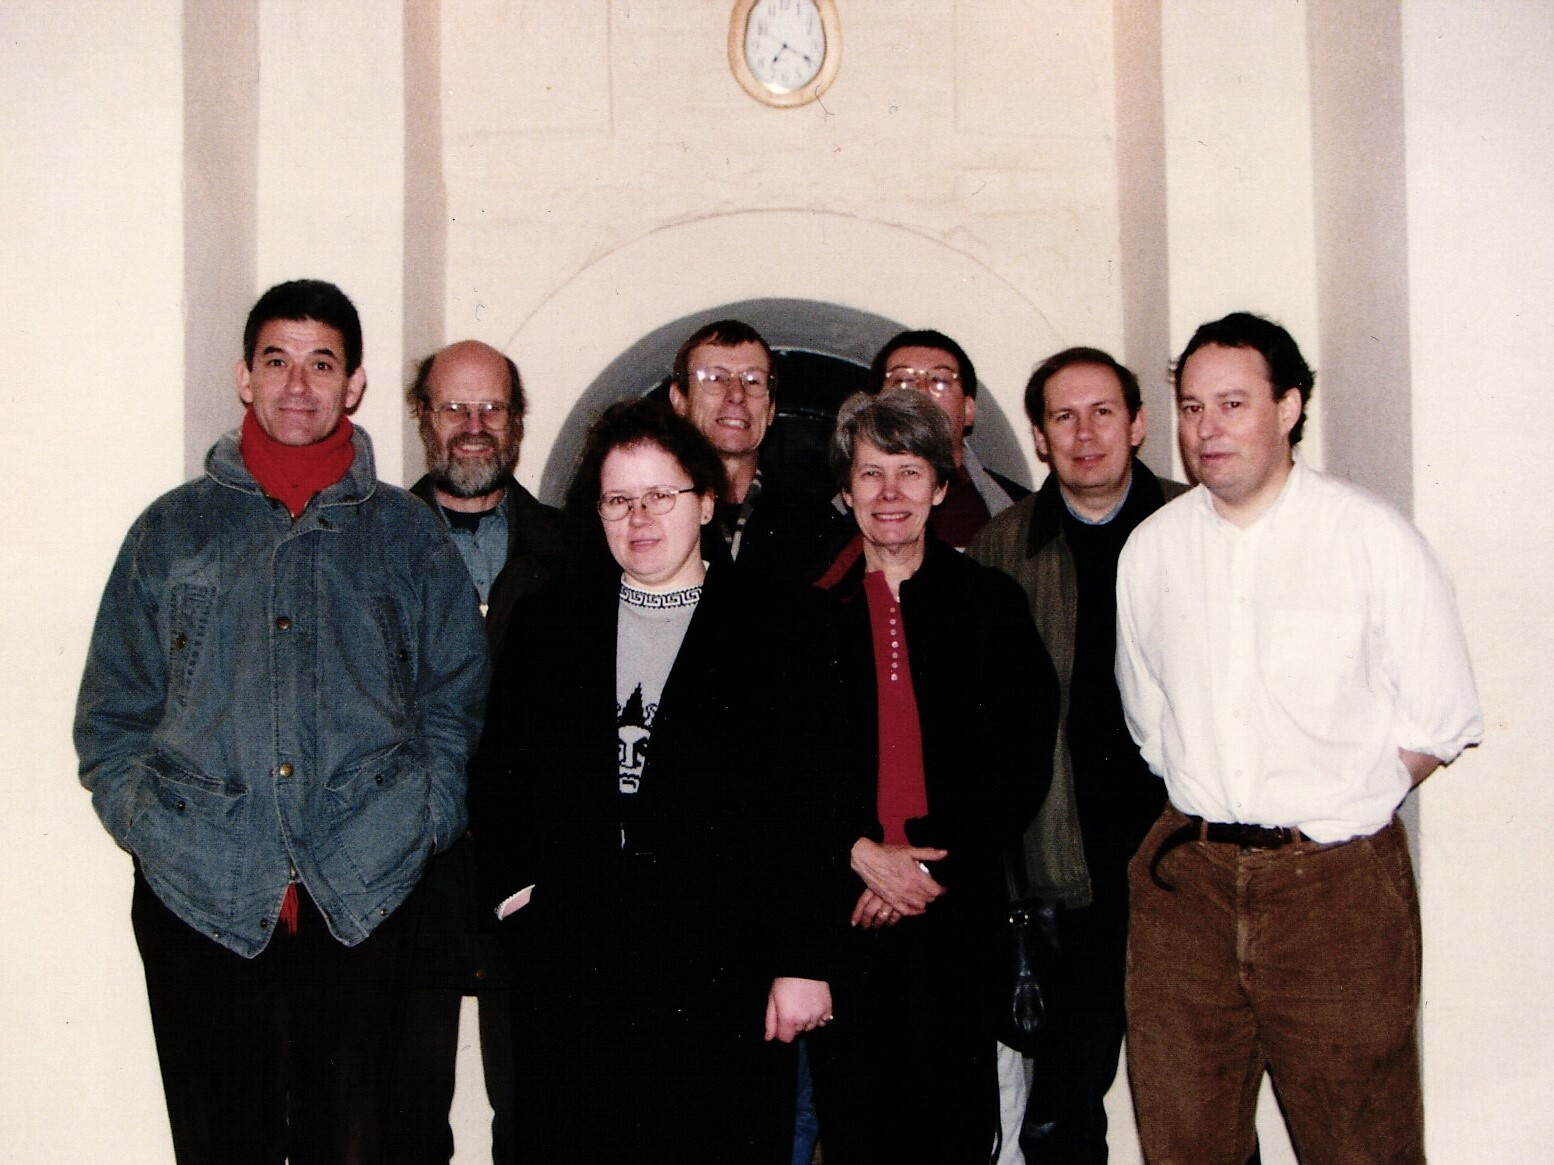 The band (front - l to r): Roger Bailey, Iona McLachlan, Prudence Fay, Roger Booth (rear - l to r): Martin Sutcliffe, Peter Blight, Chris Small, Steve Russ.